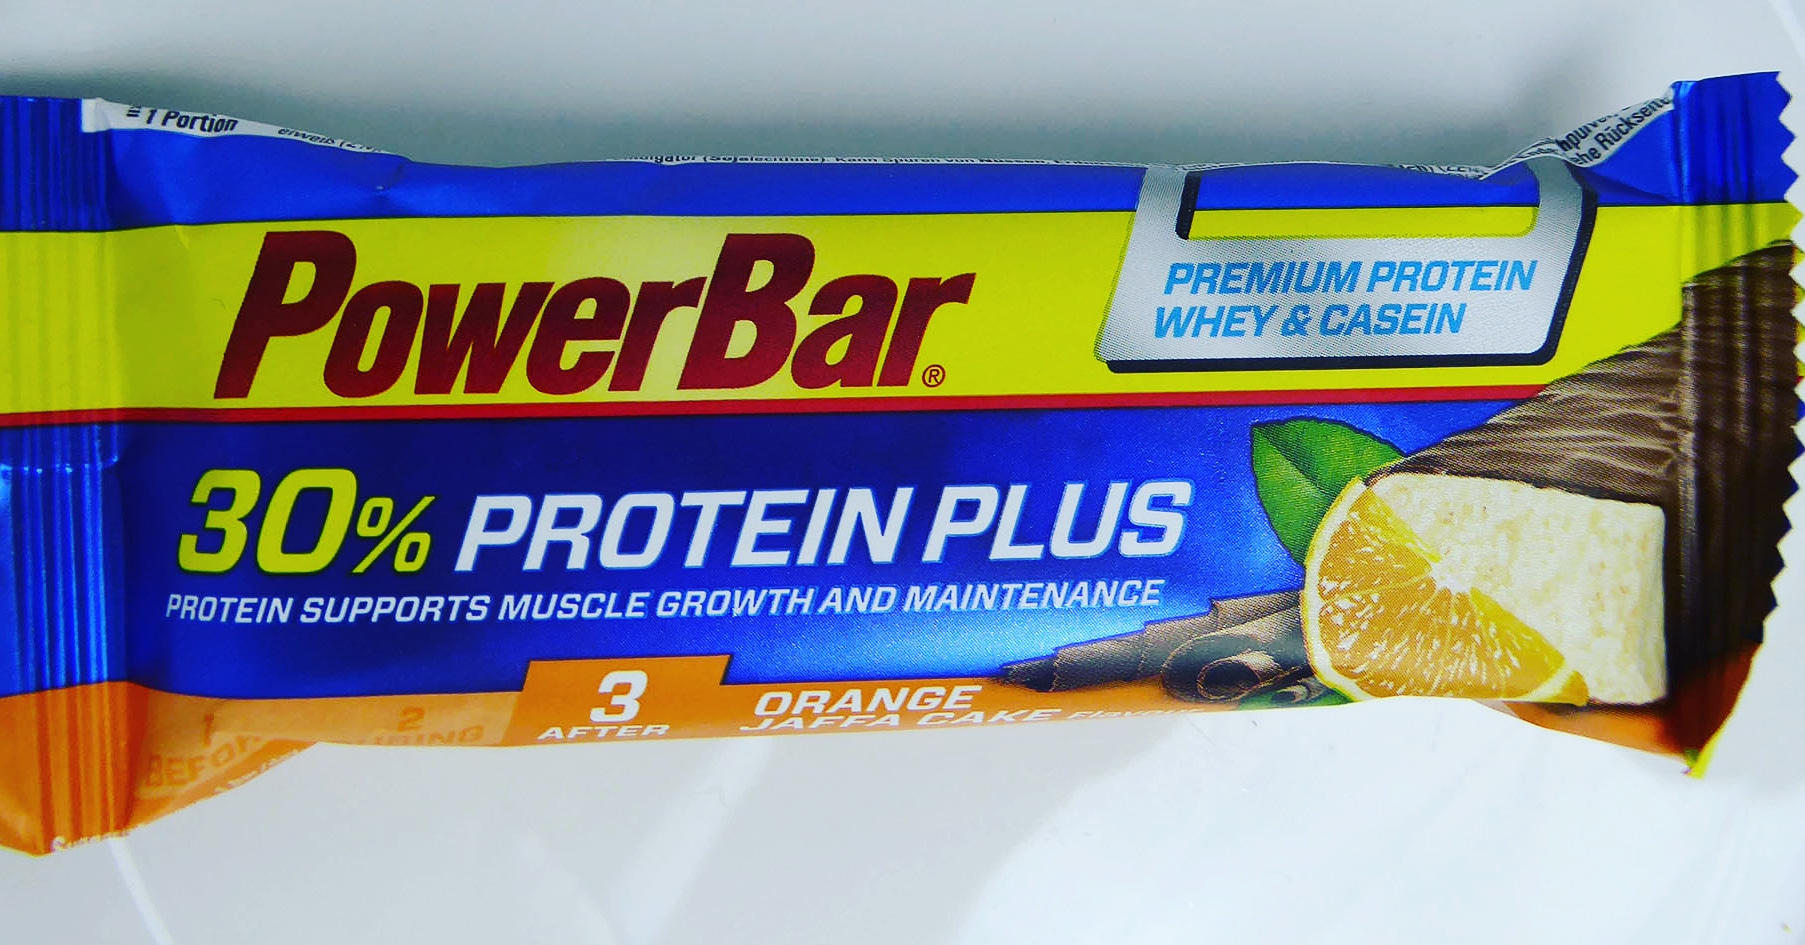 PowerBar Power Bar Jaffa Cake Orange Protein Bar Proteinbar Proteinriegel Eiweißriegel